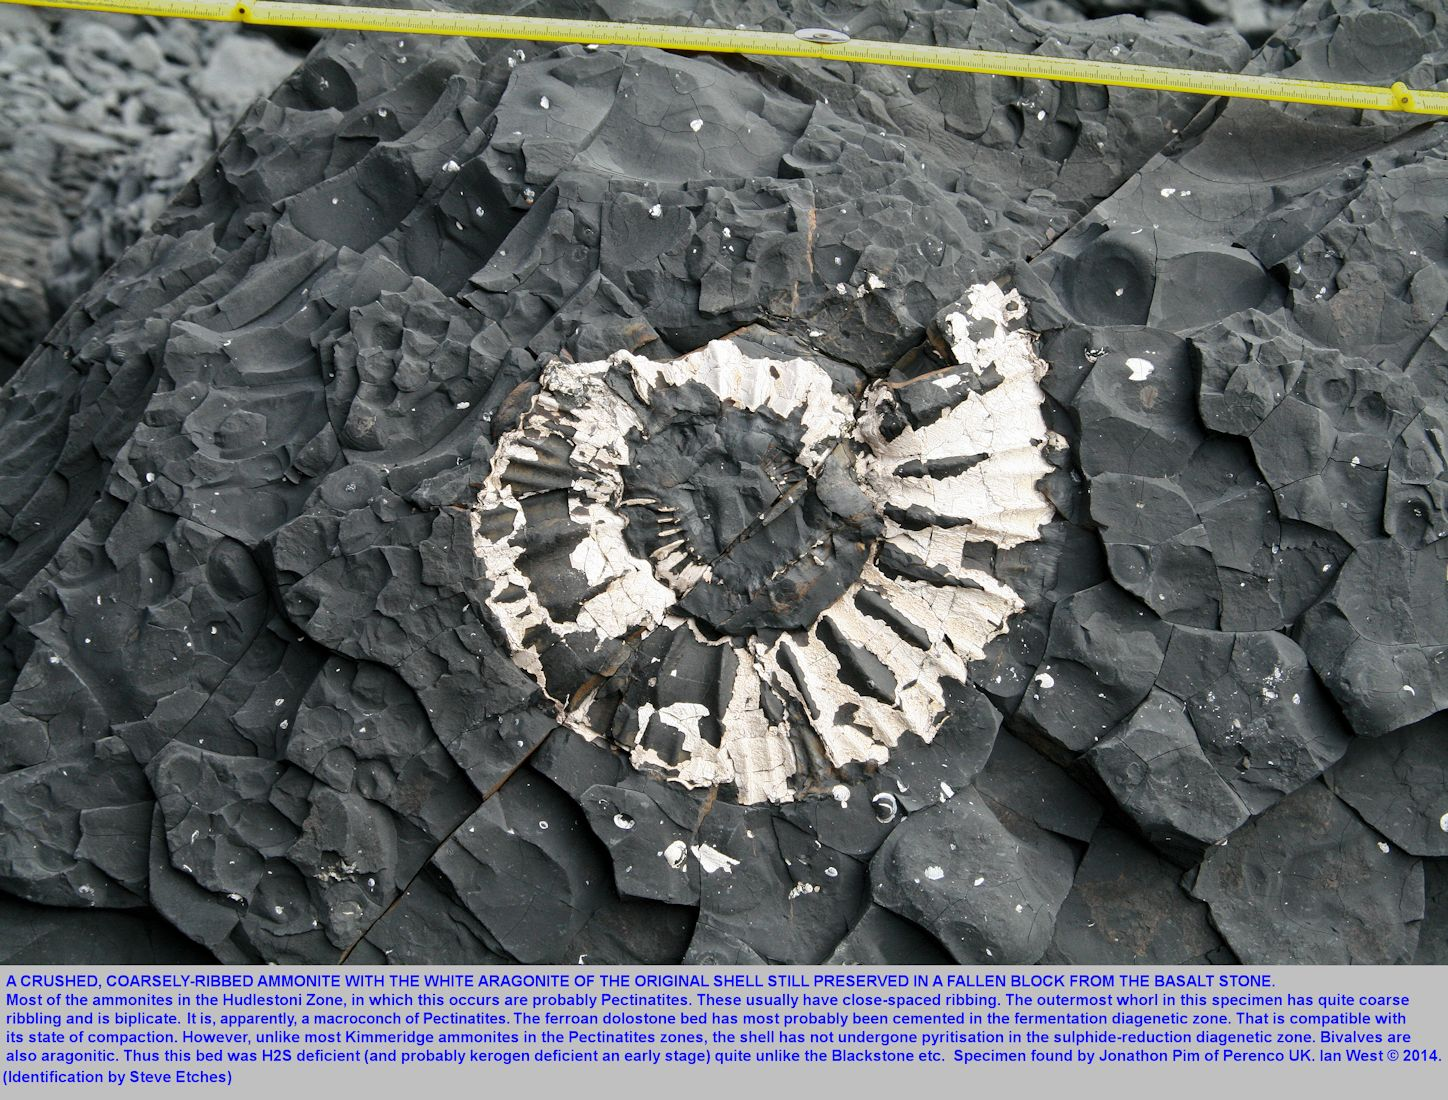 A coarse-ribbed ammonite, still preserved as aragonite, in the Basalt Stone Band, a ferroan dolostone, Hudlestoni Zone, Upper Kimmeridge Clay, Rope Lake Head, east of  Kimmeridge Bay, Dorset, 31st March 2014